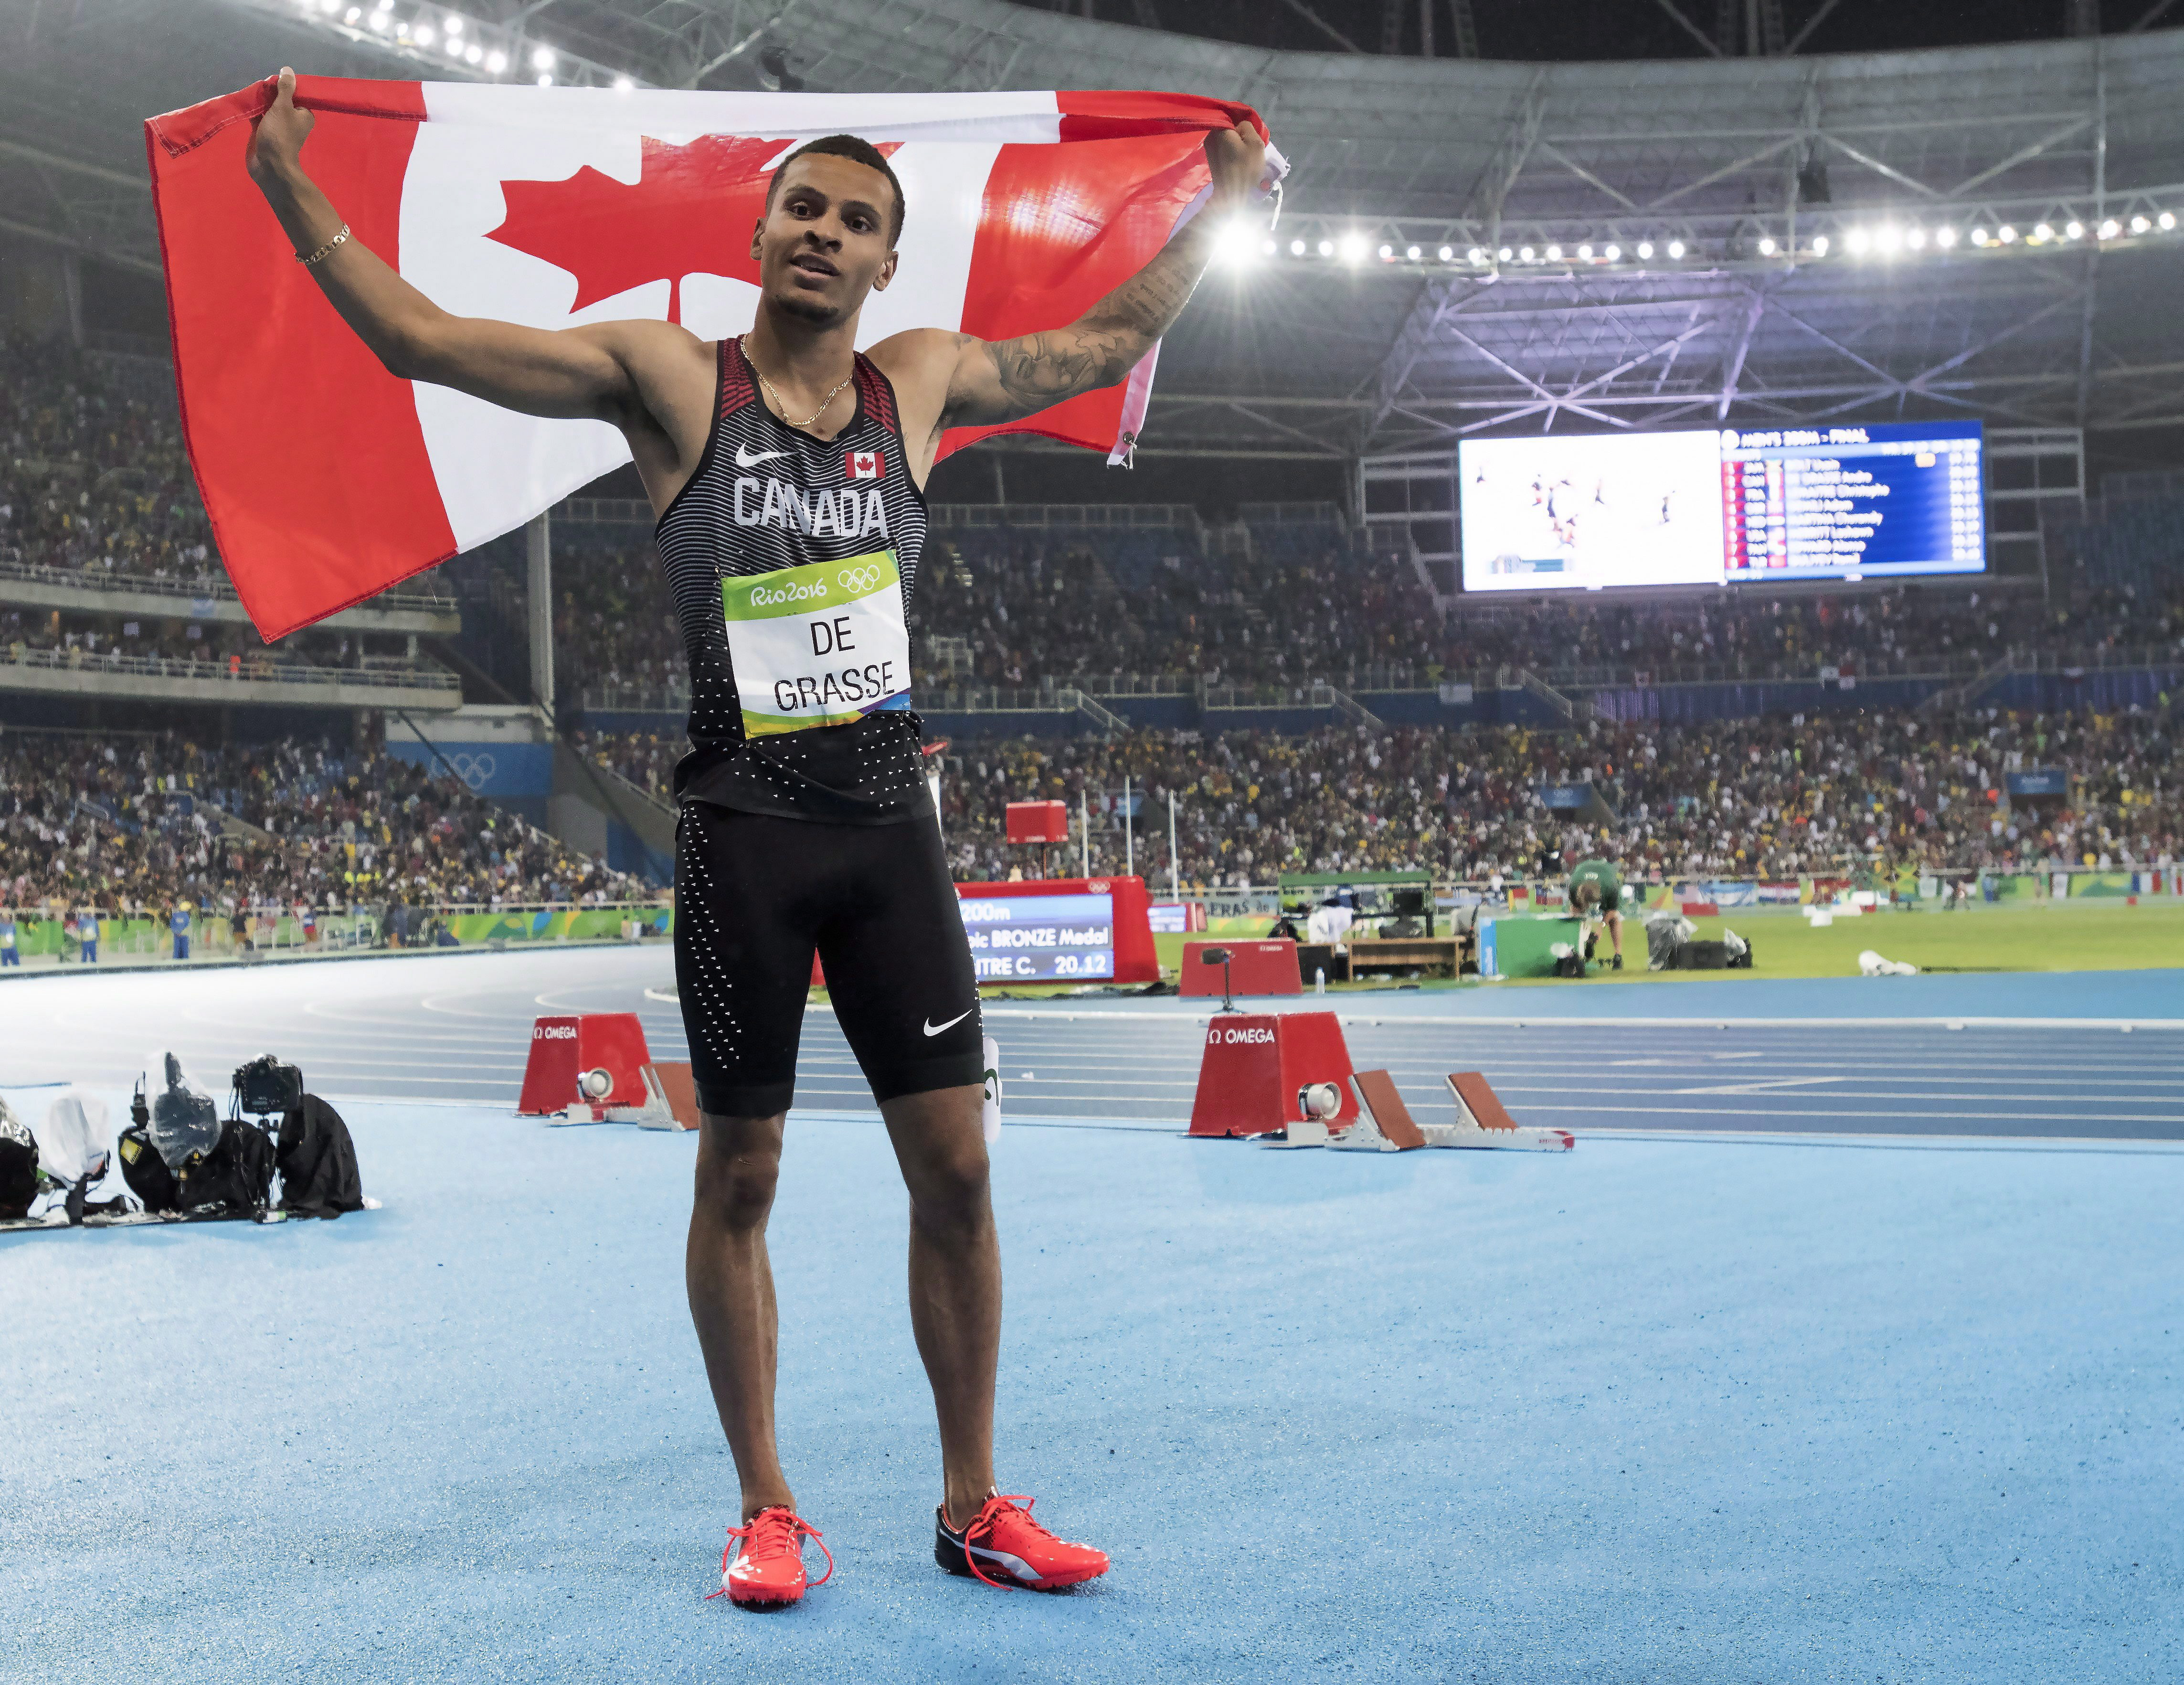 Andre De Grasse holds the Canadian flag over his head celebrating his Silver medal win.